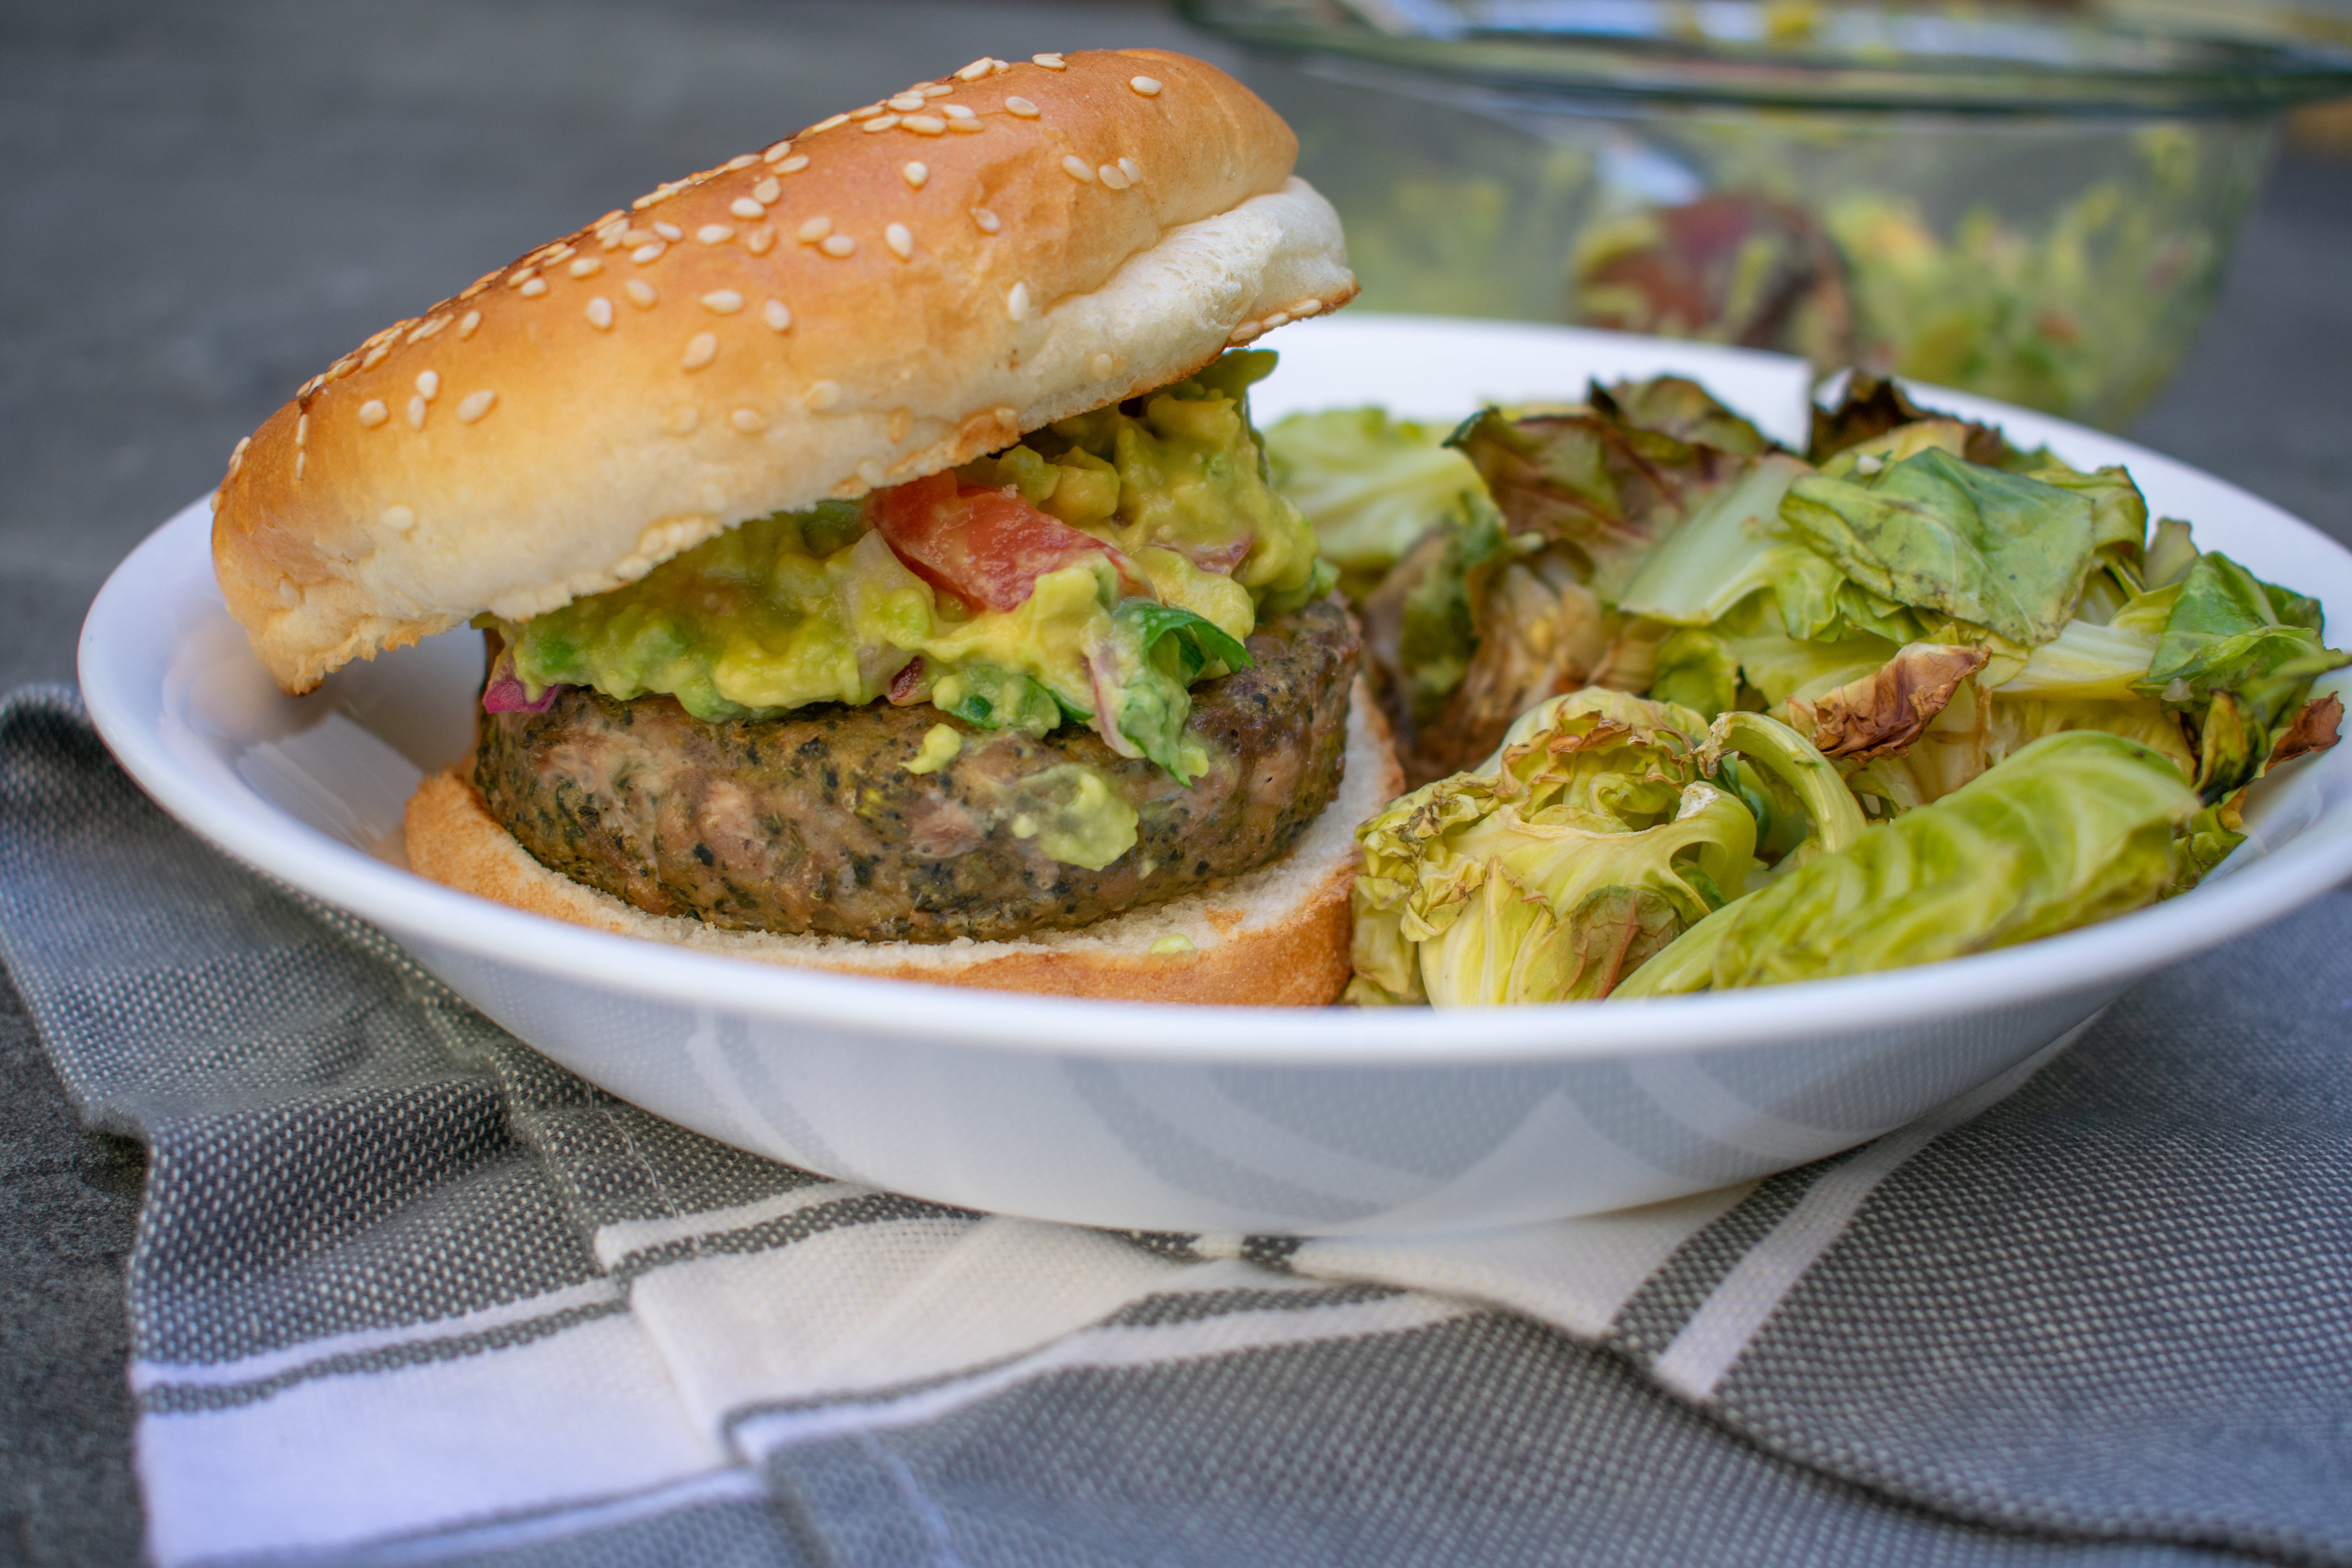 Spinach & Kale Patty Burger